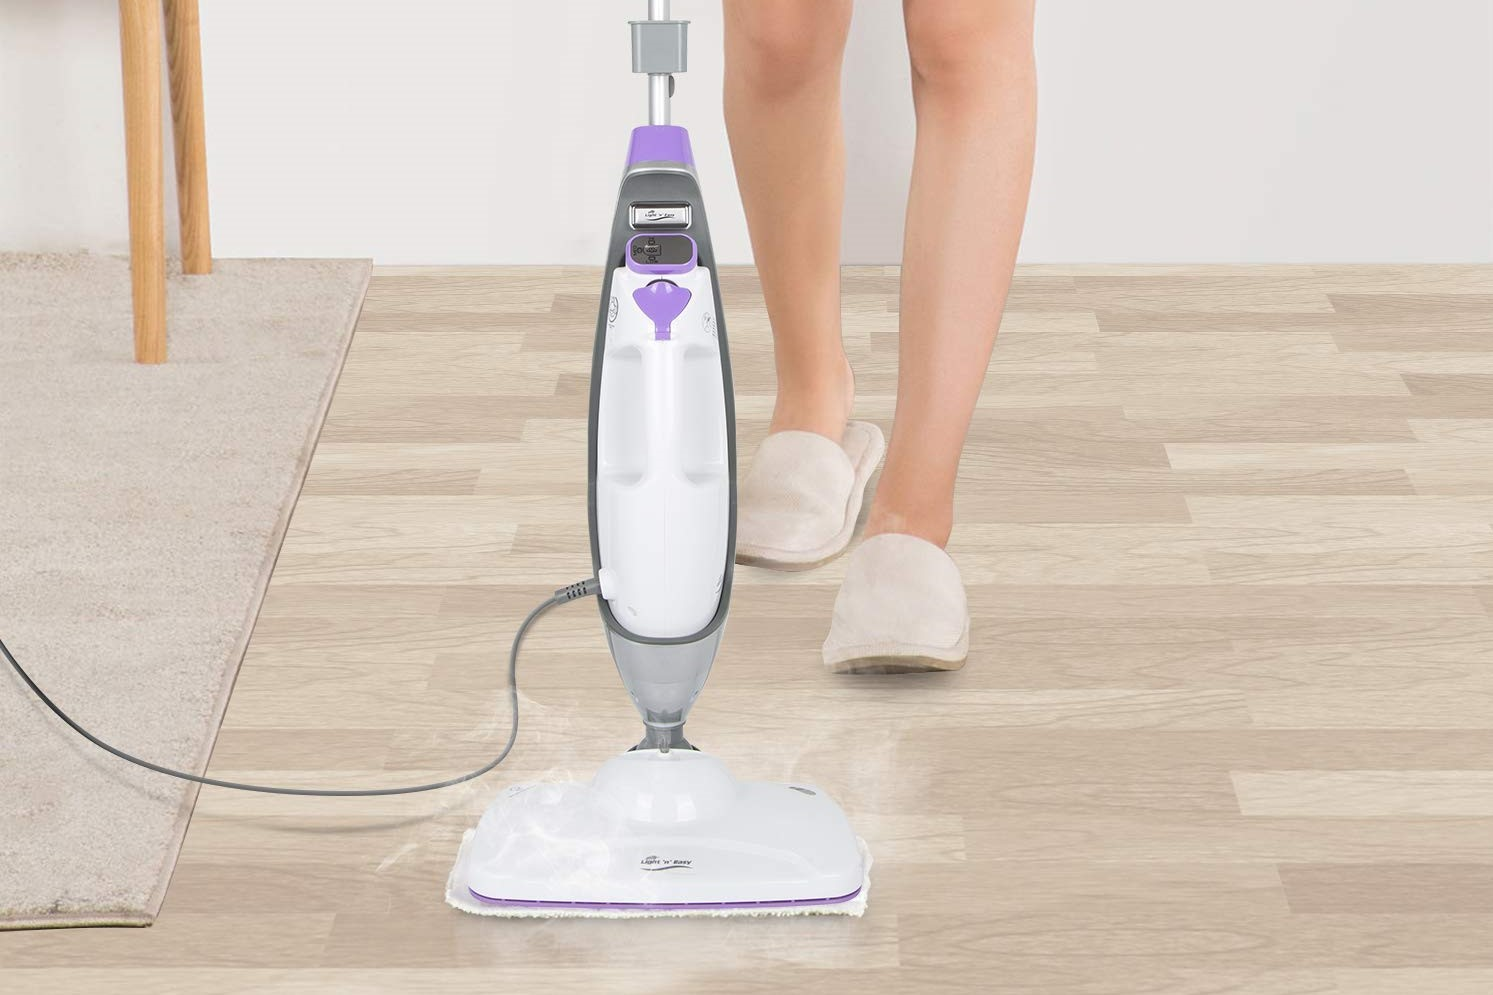 Top 7 Best Steam Mops For Laminate Floors 2019 Reviews Amp Guide